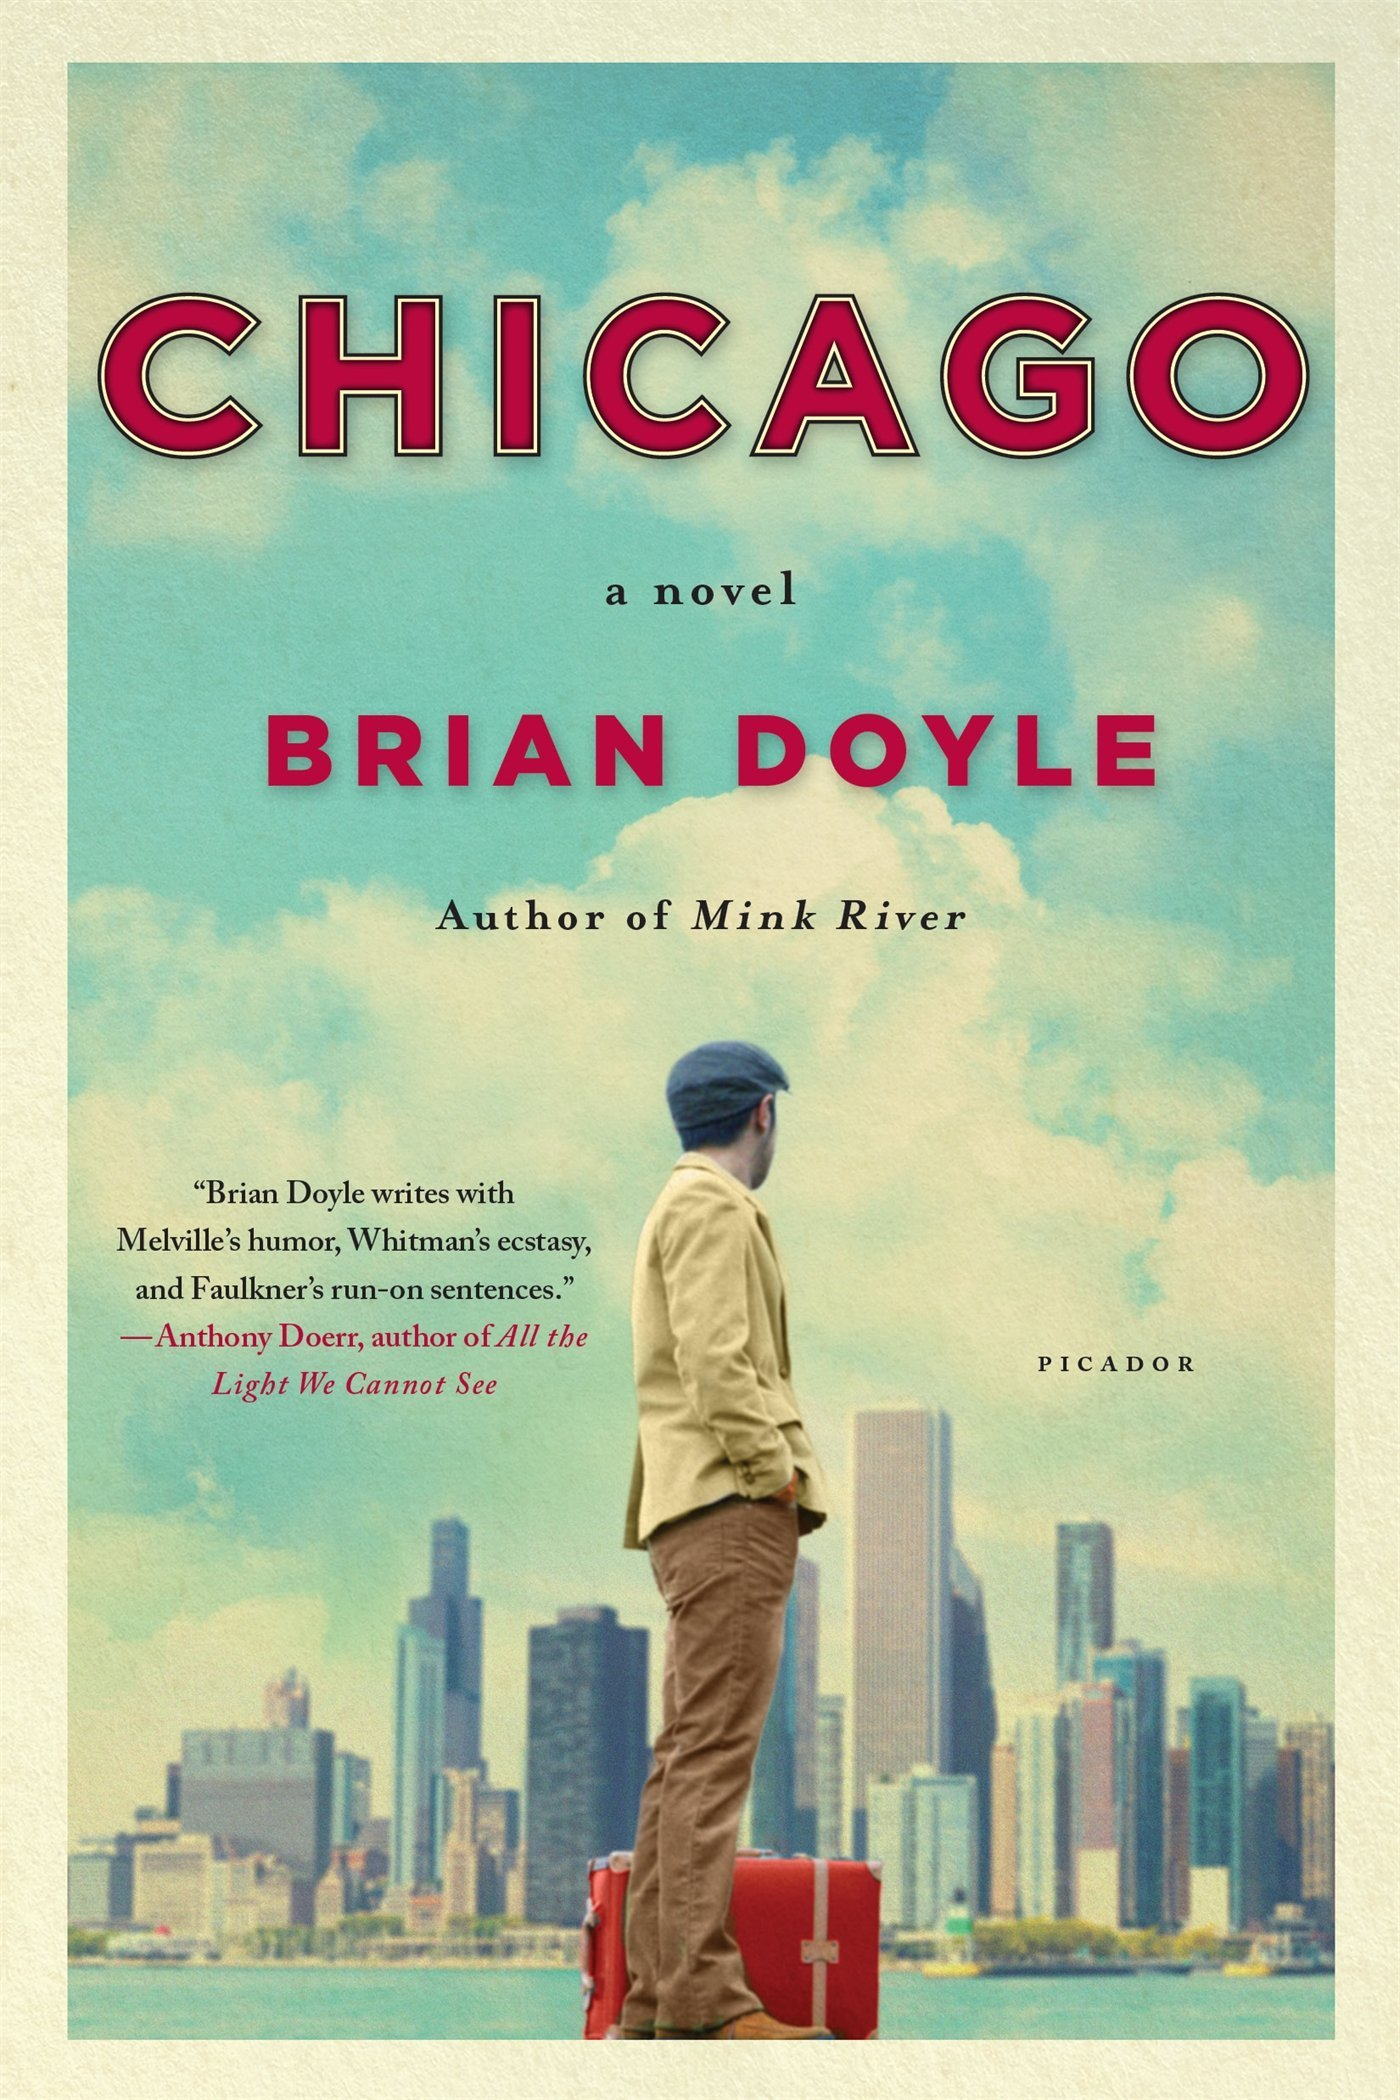 Chicago: A Novel: Brian Doyle: 9781250118127: Amazon.com: Books